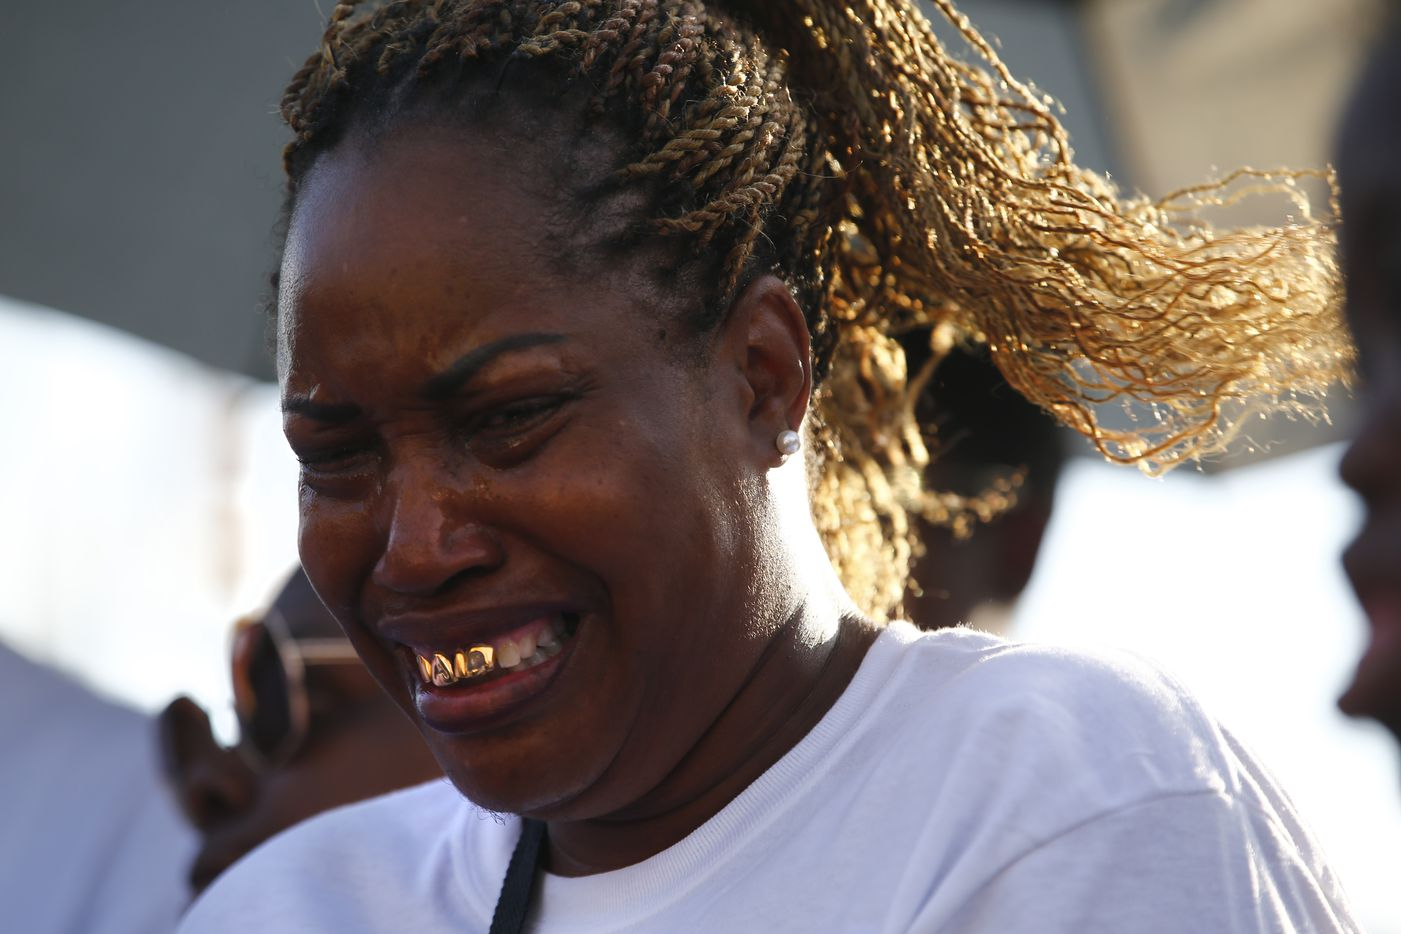 Shavon Randle's aunt Jessie Randle cries during the vigil in Dallas on July 3, 2017.